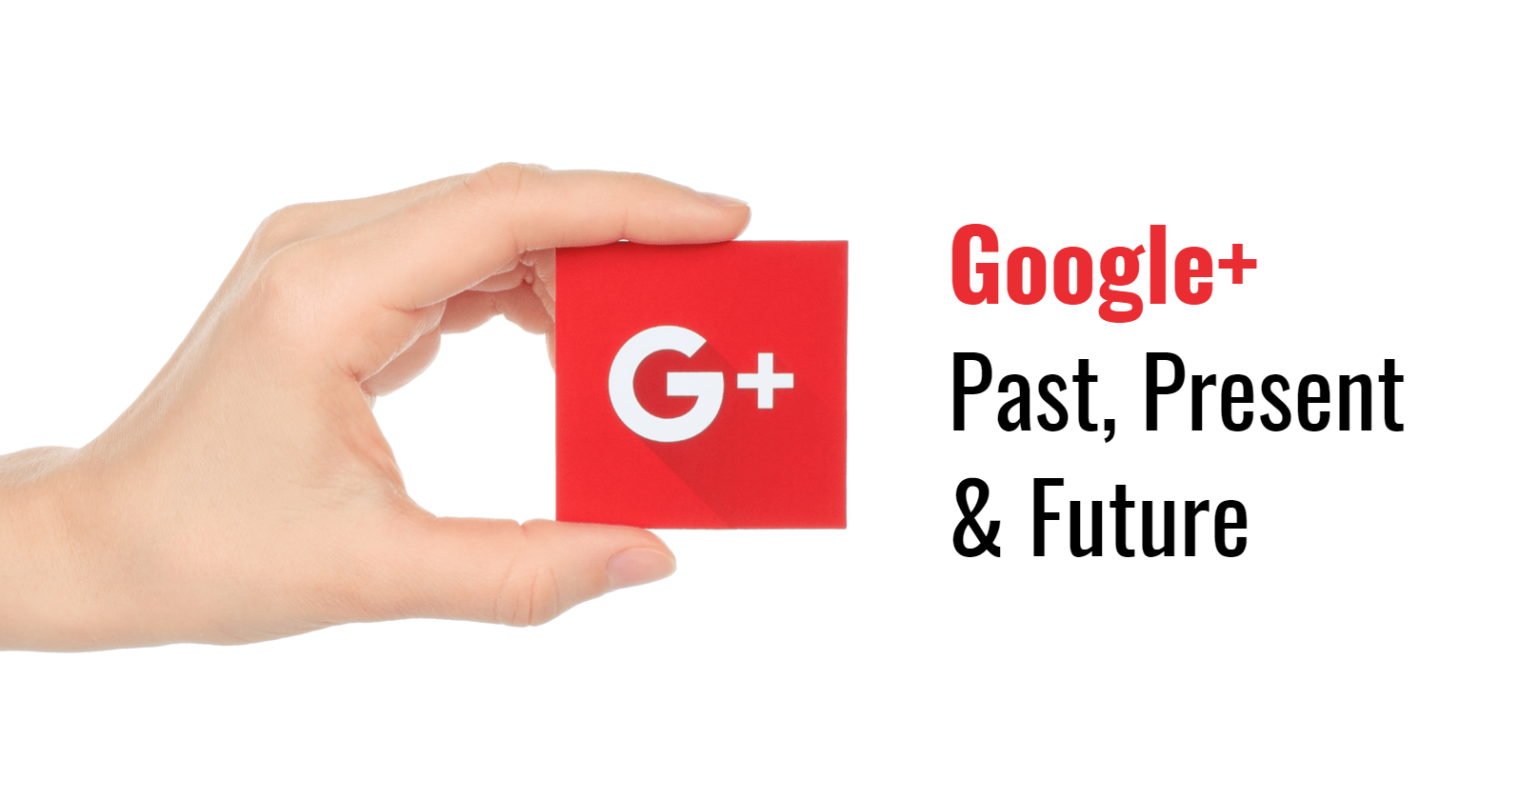 Google Plus: Past, Present & Future